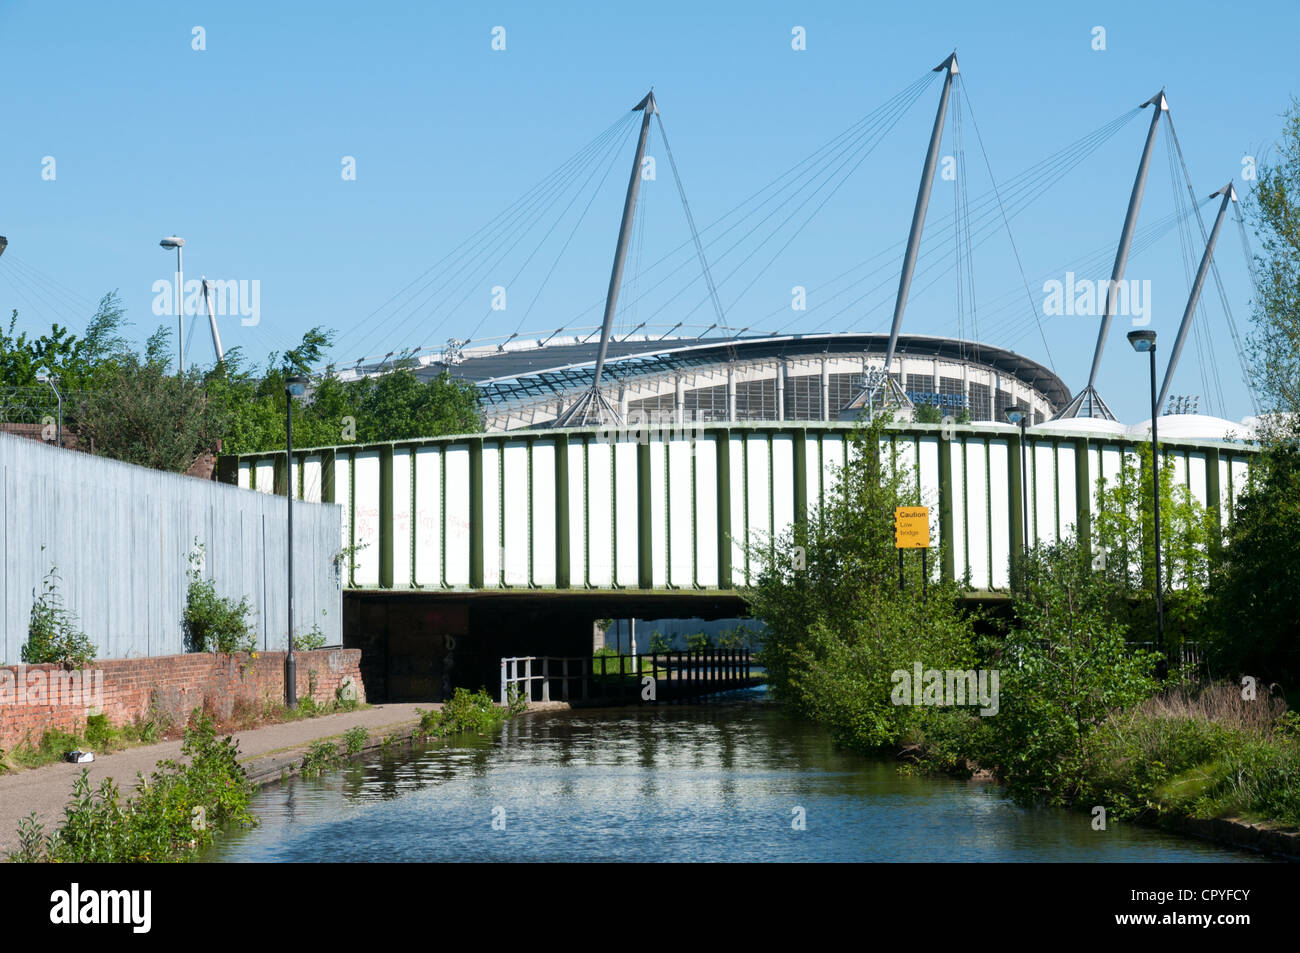 The Etihad Stadium and a railway bridge from the Ashton Canal, Ancoats, Manchester, England, UK - Stock Image